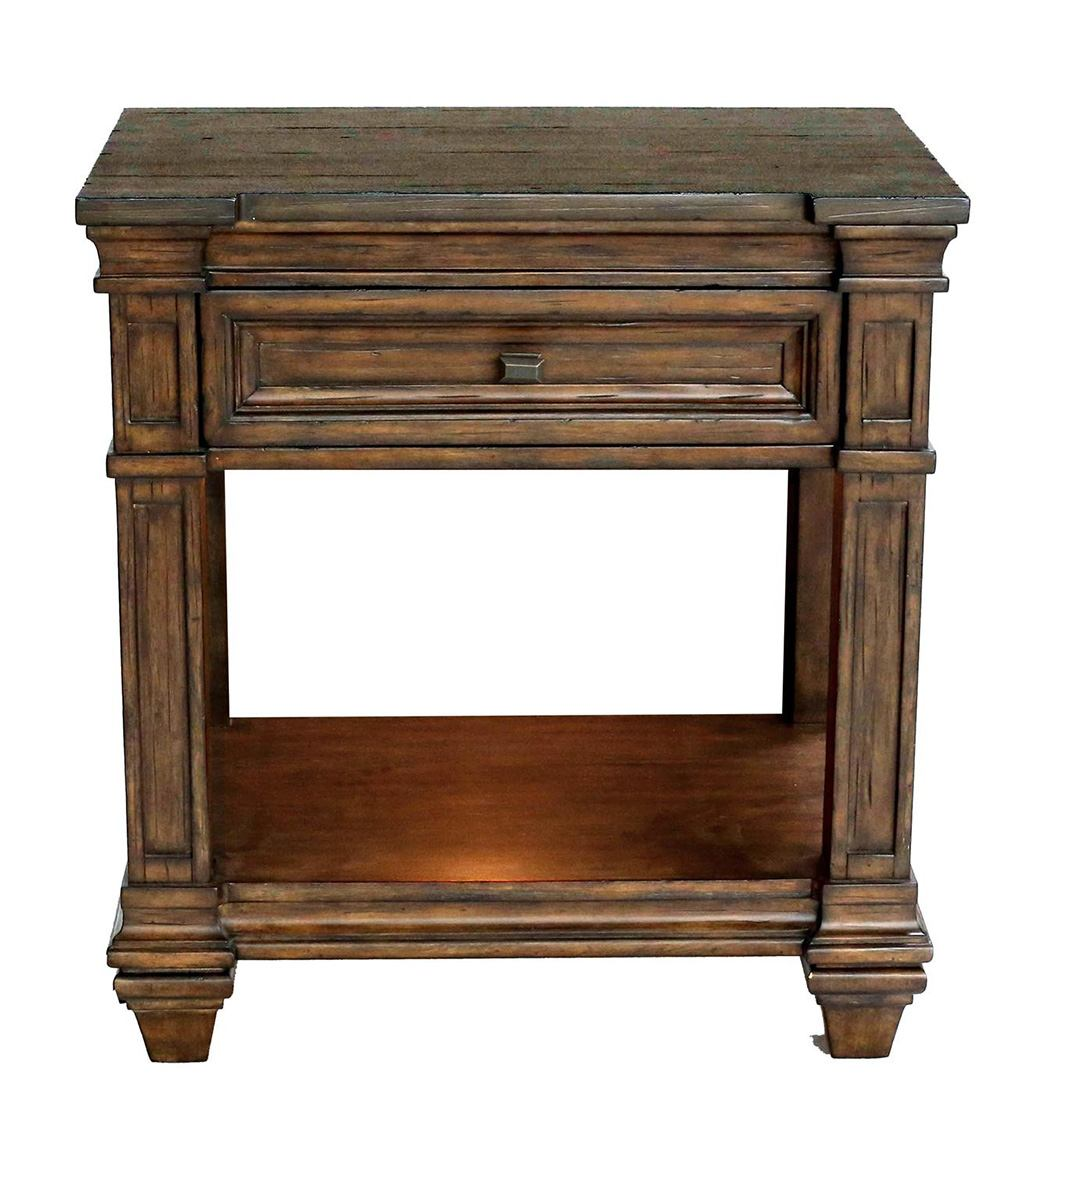 A-America Furniture Gallatin 1 Drawer Bedside Table in Timeworn Mahogany GLNTM5760